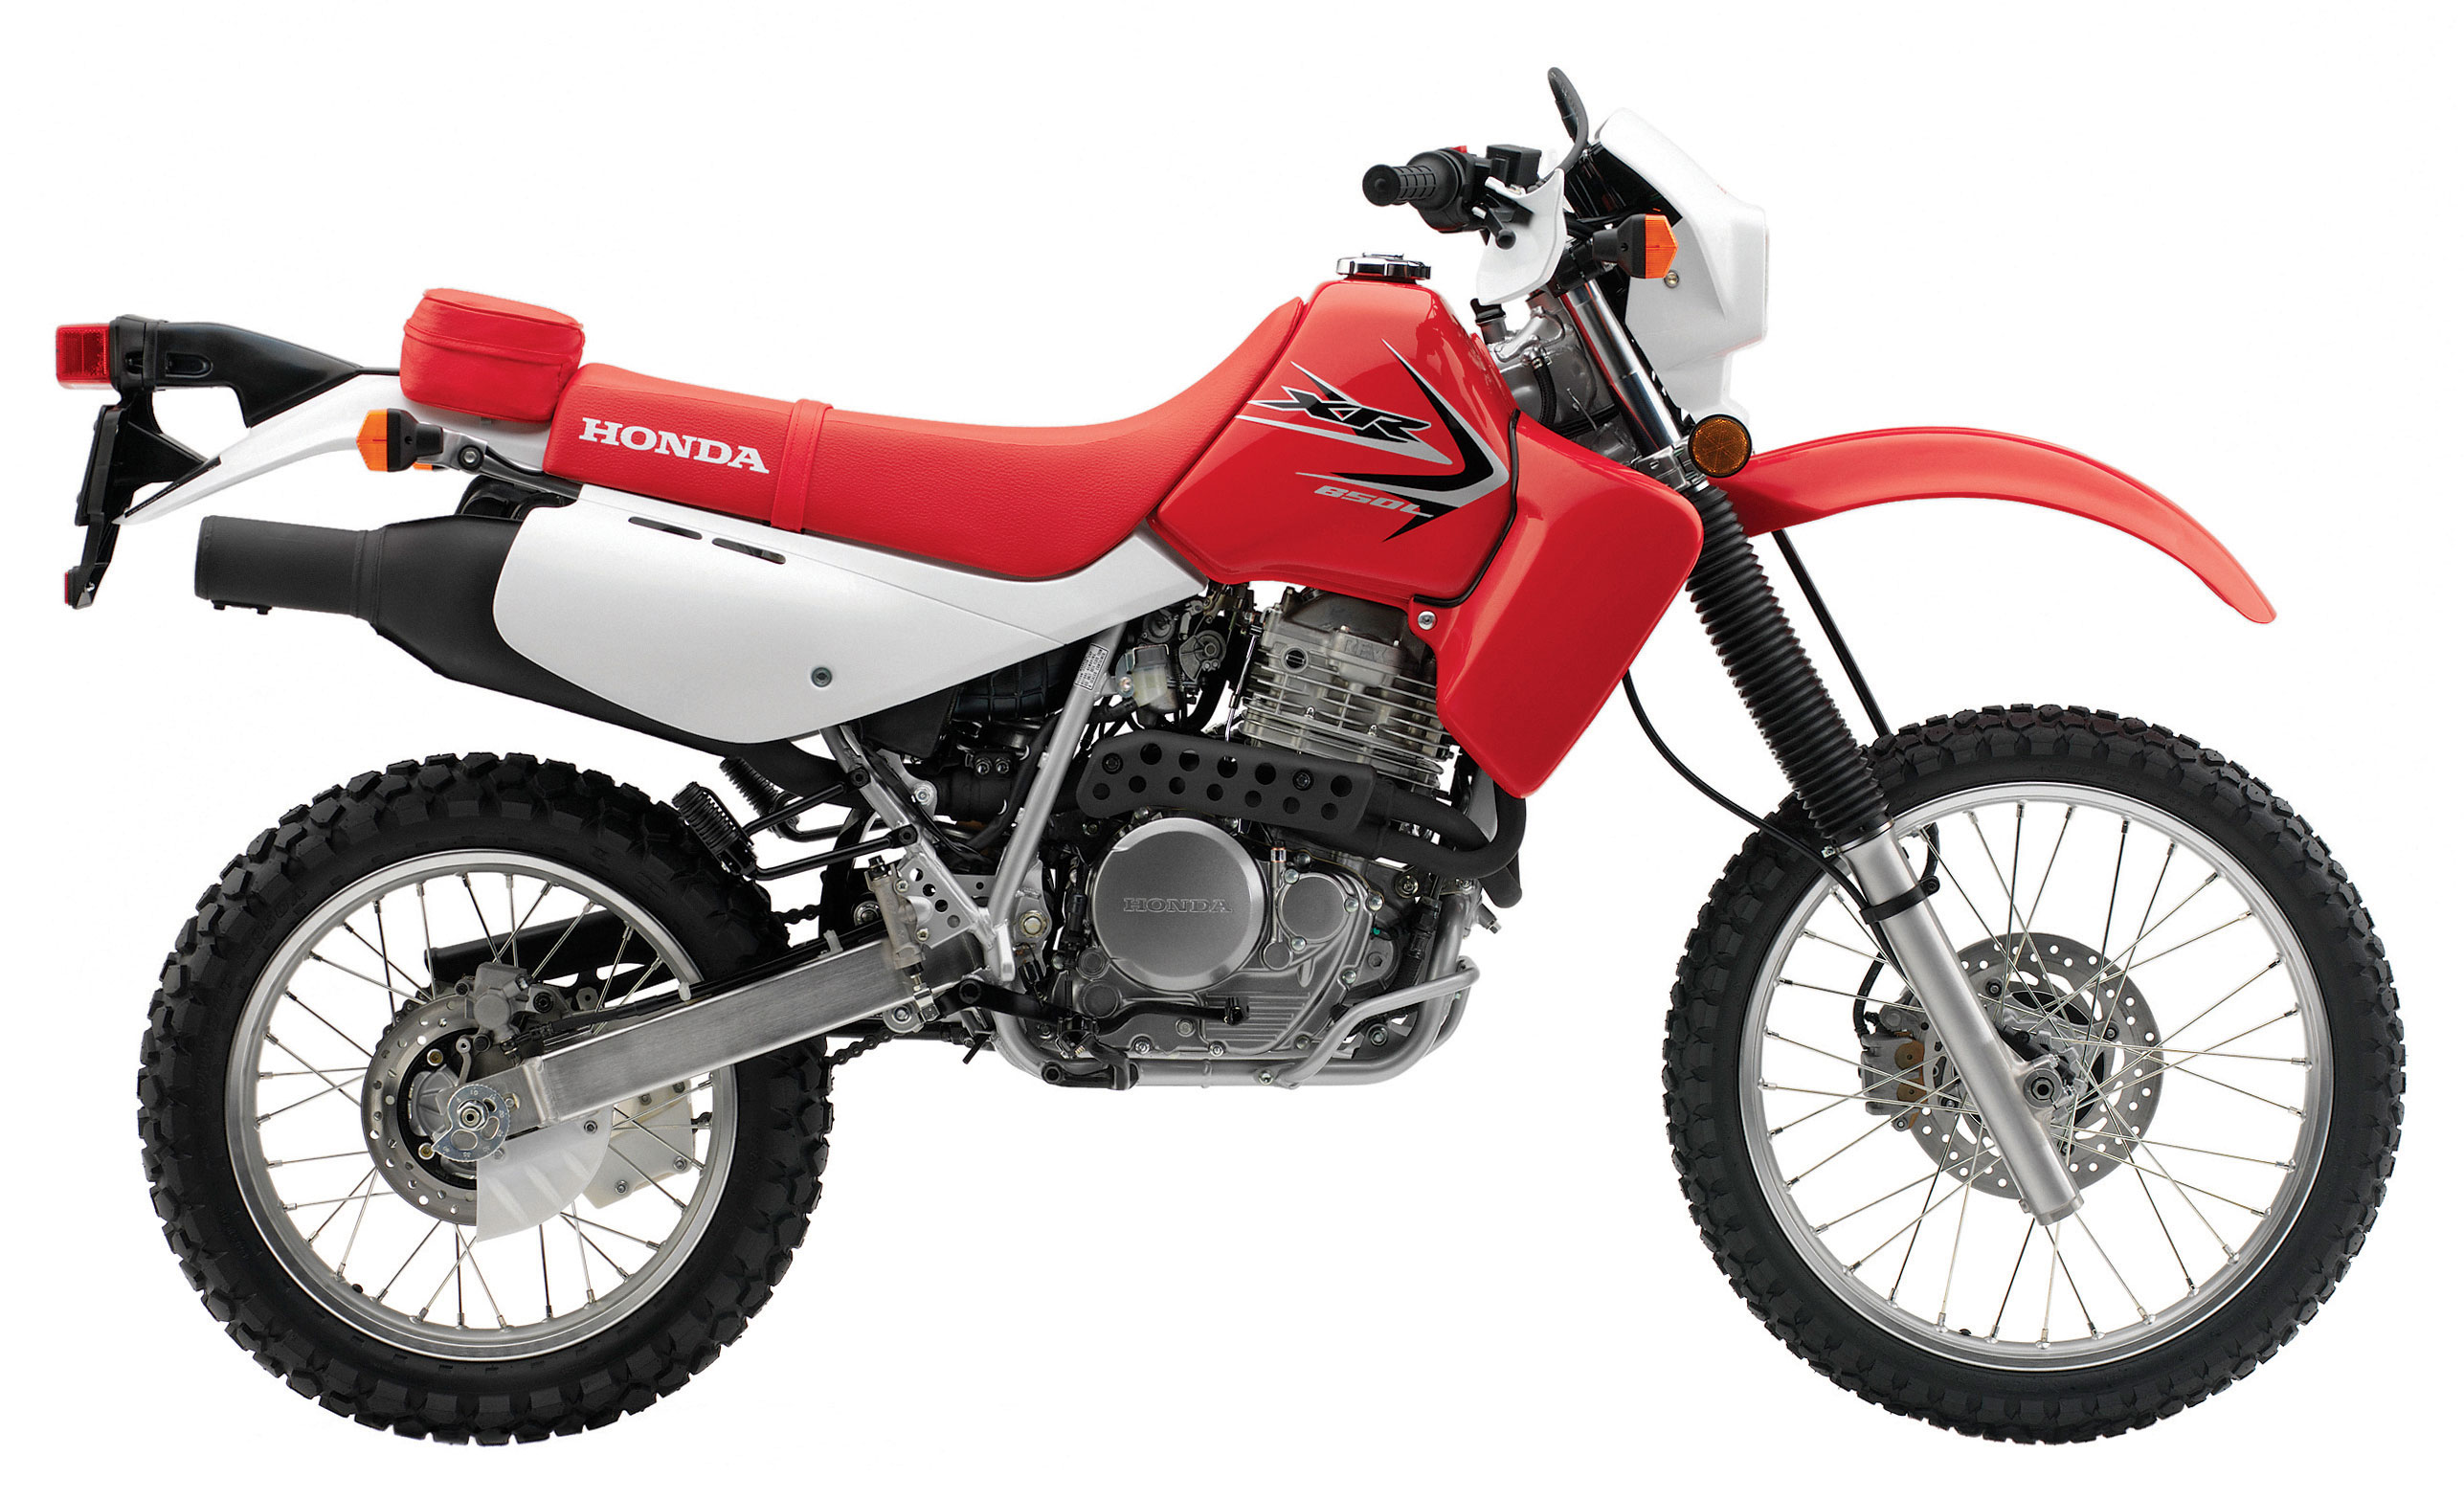 Honda xr650l photo - 4